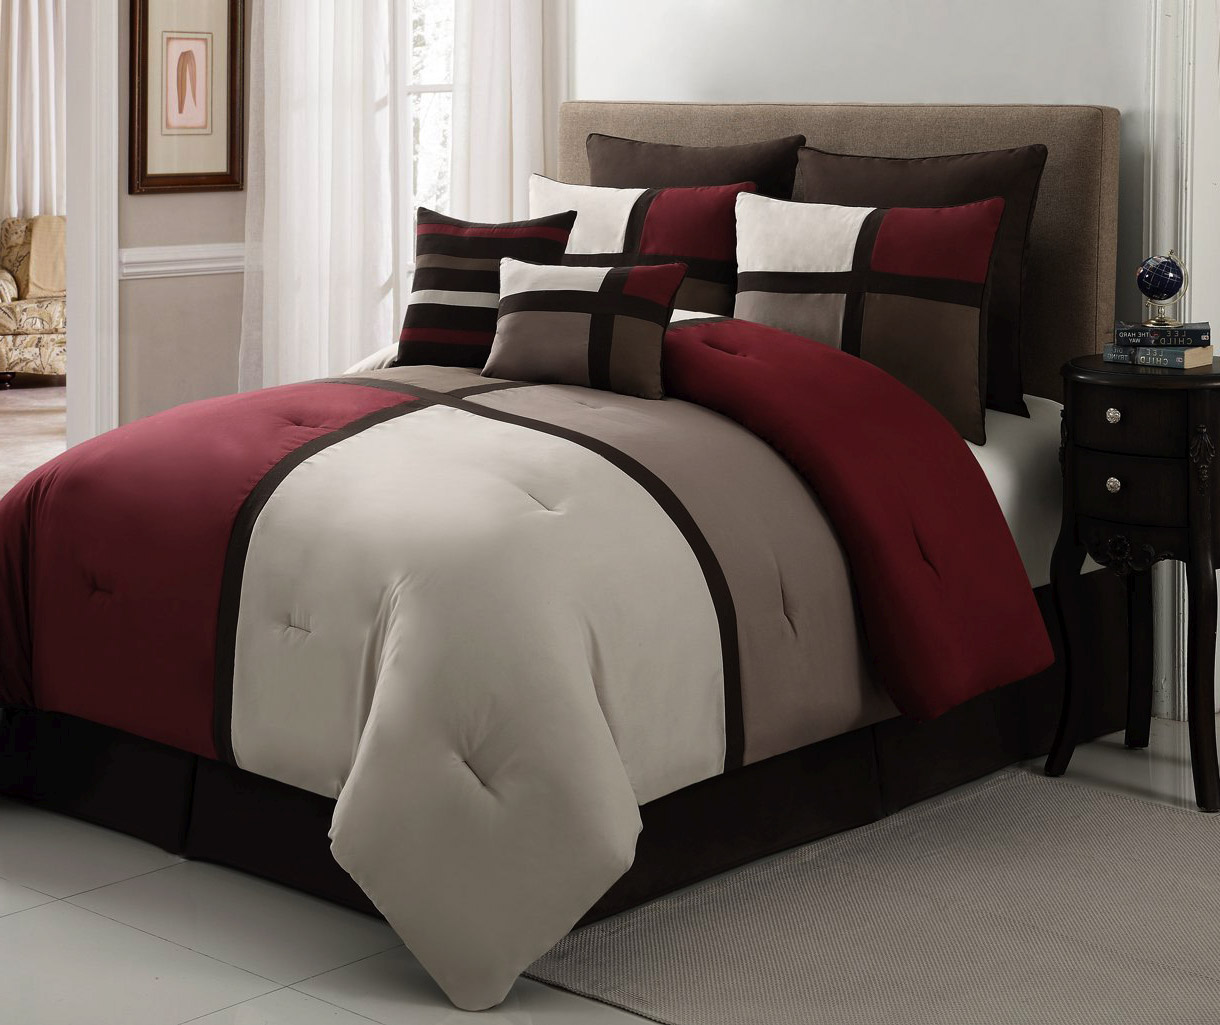 duke burgandy brown red and white california king bed comforter sets consisting of seven pieces and